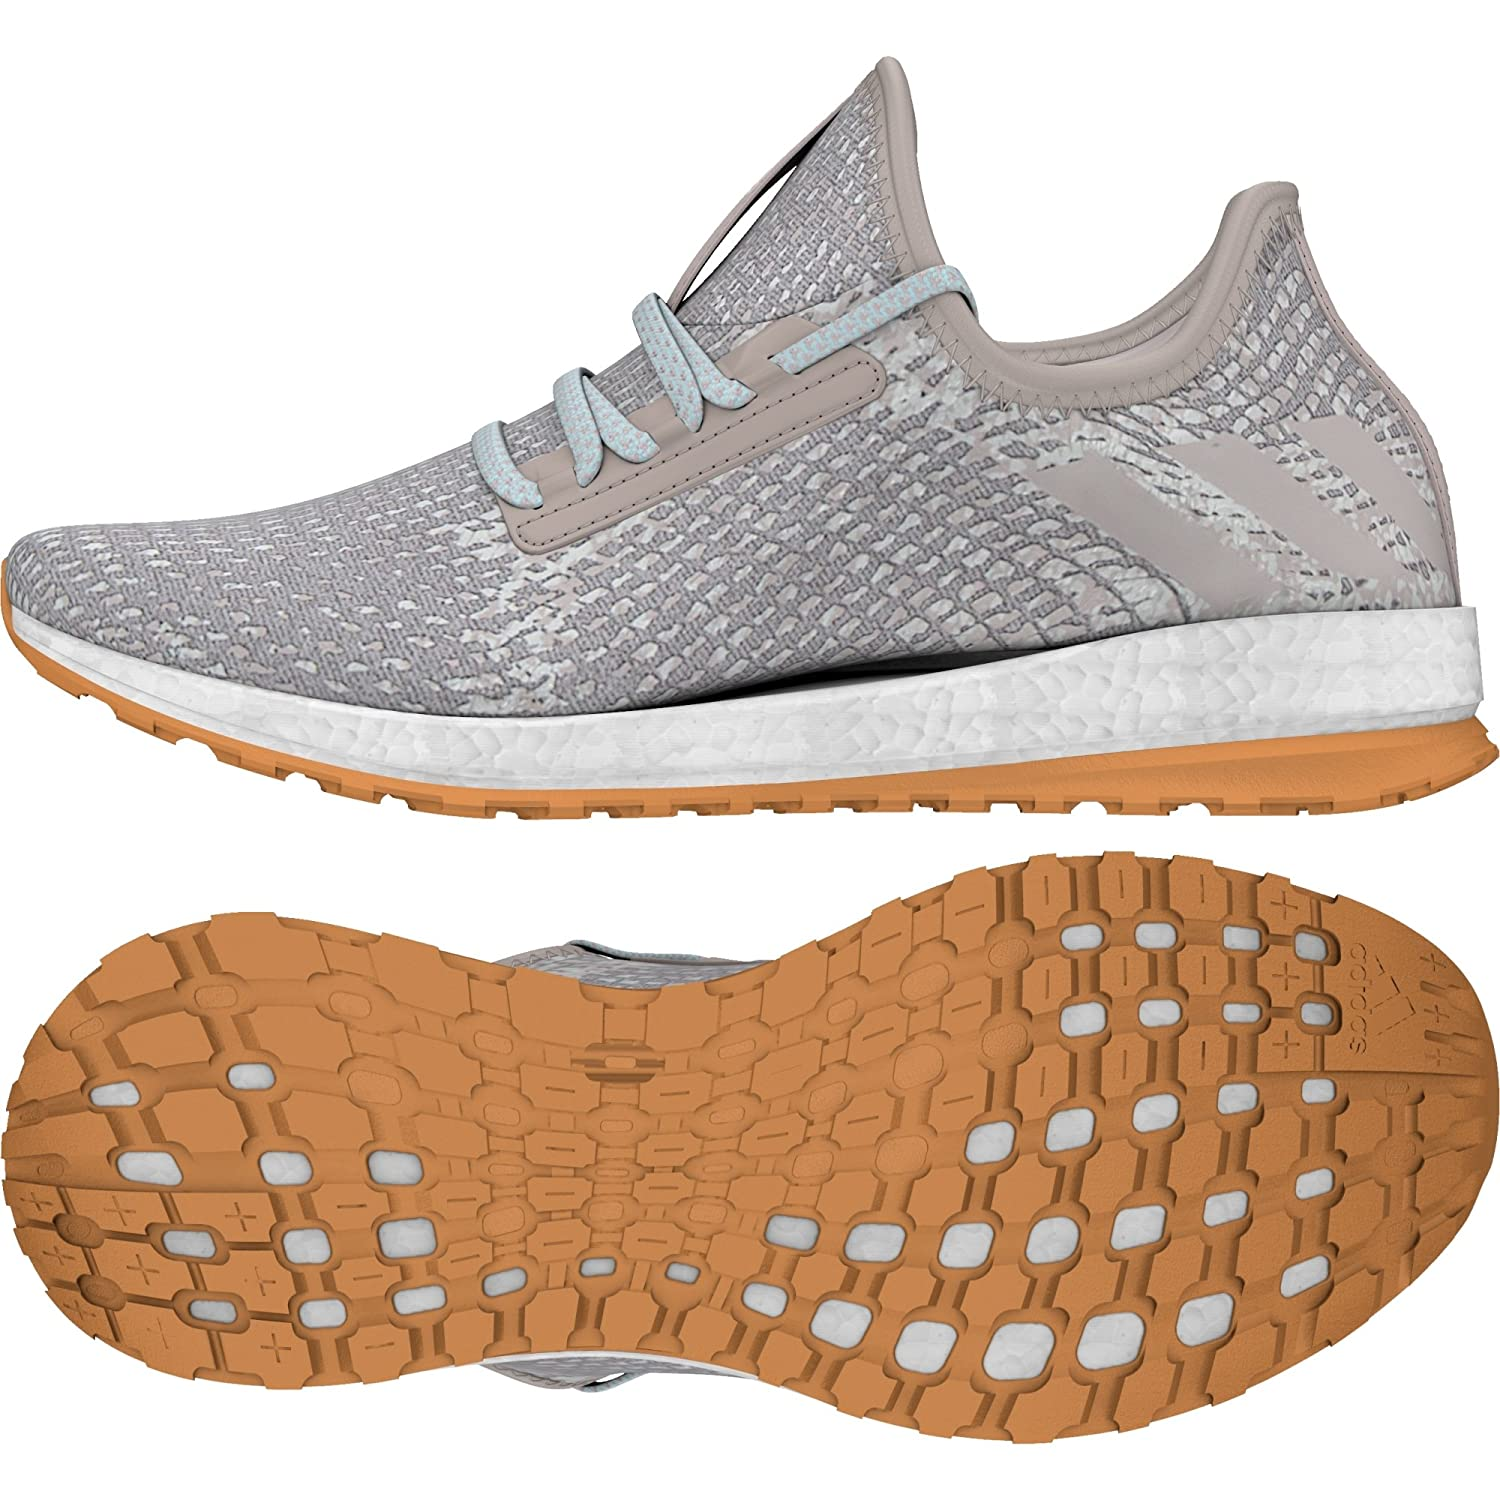 a5647f603 adidas Women s Pureboost X ATR Running Shoes  Amazon.co.uk  Shoes   Bags